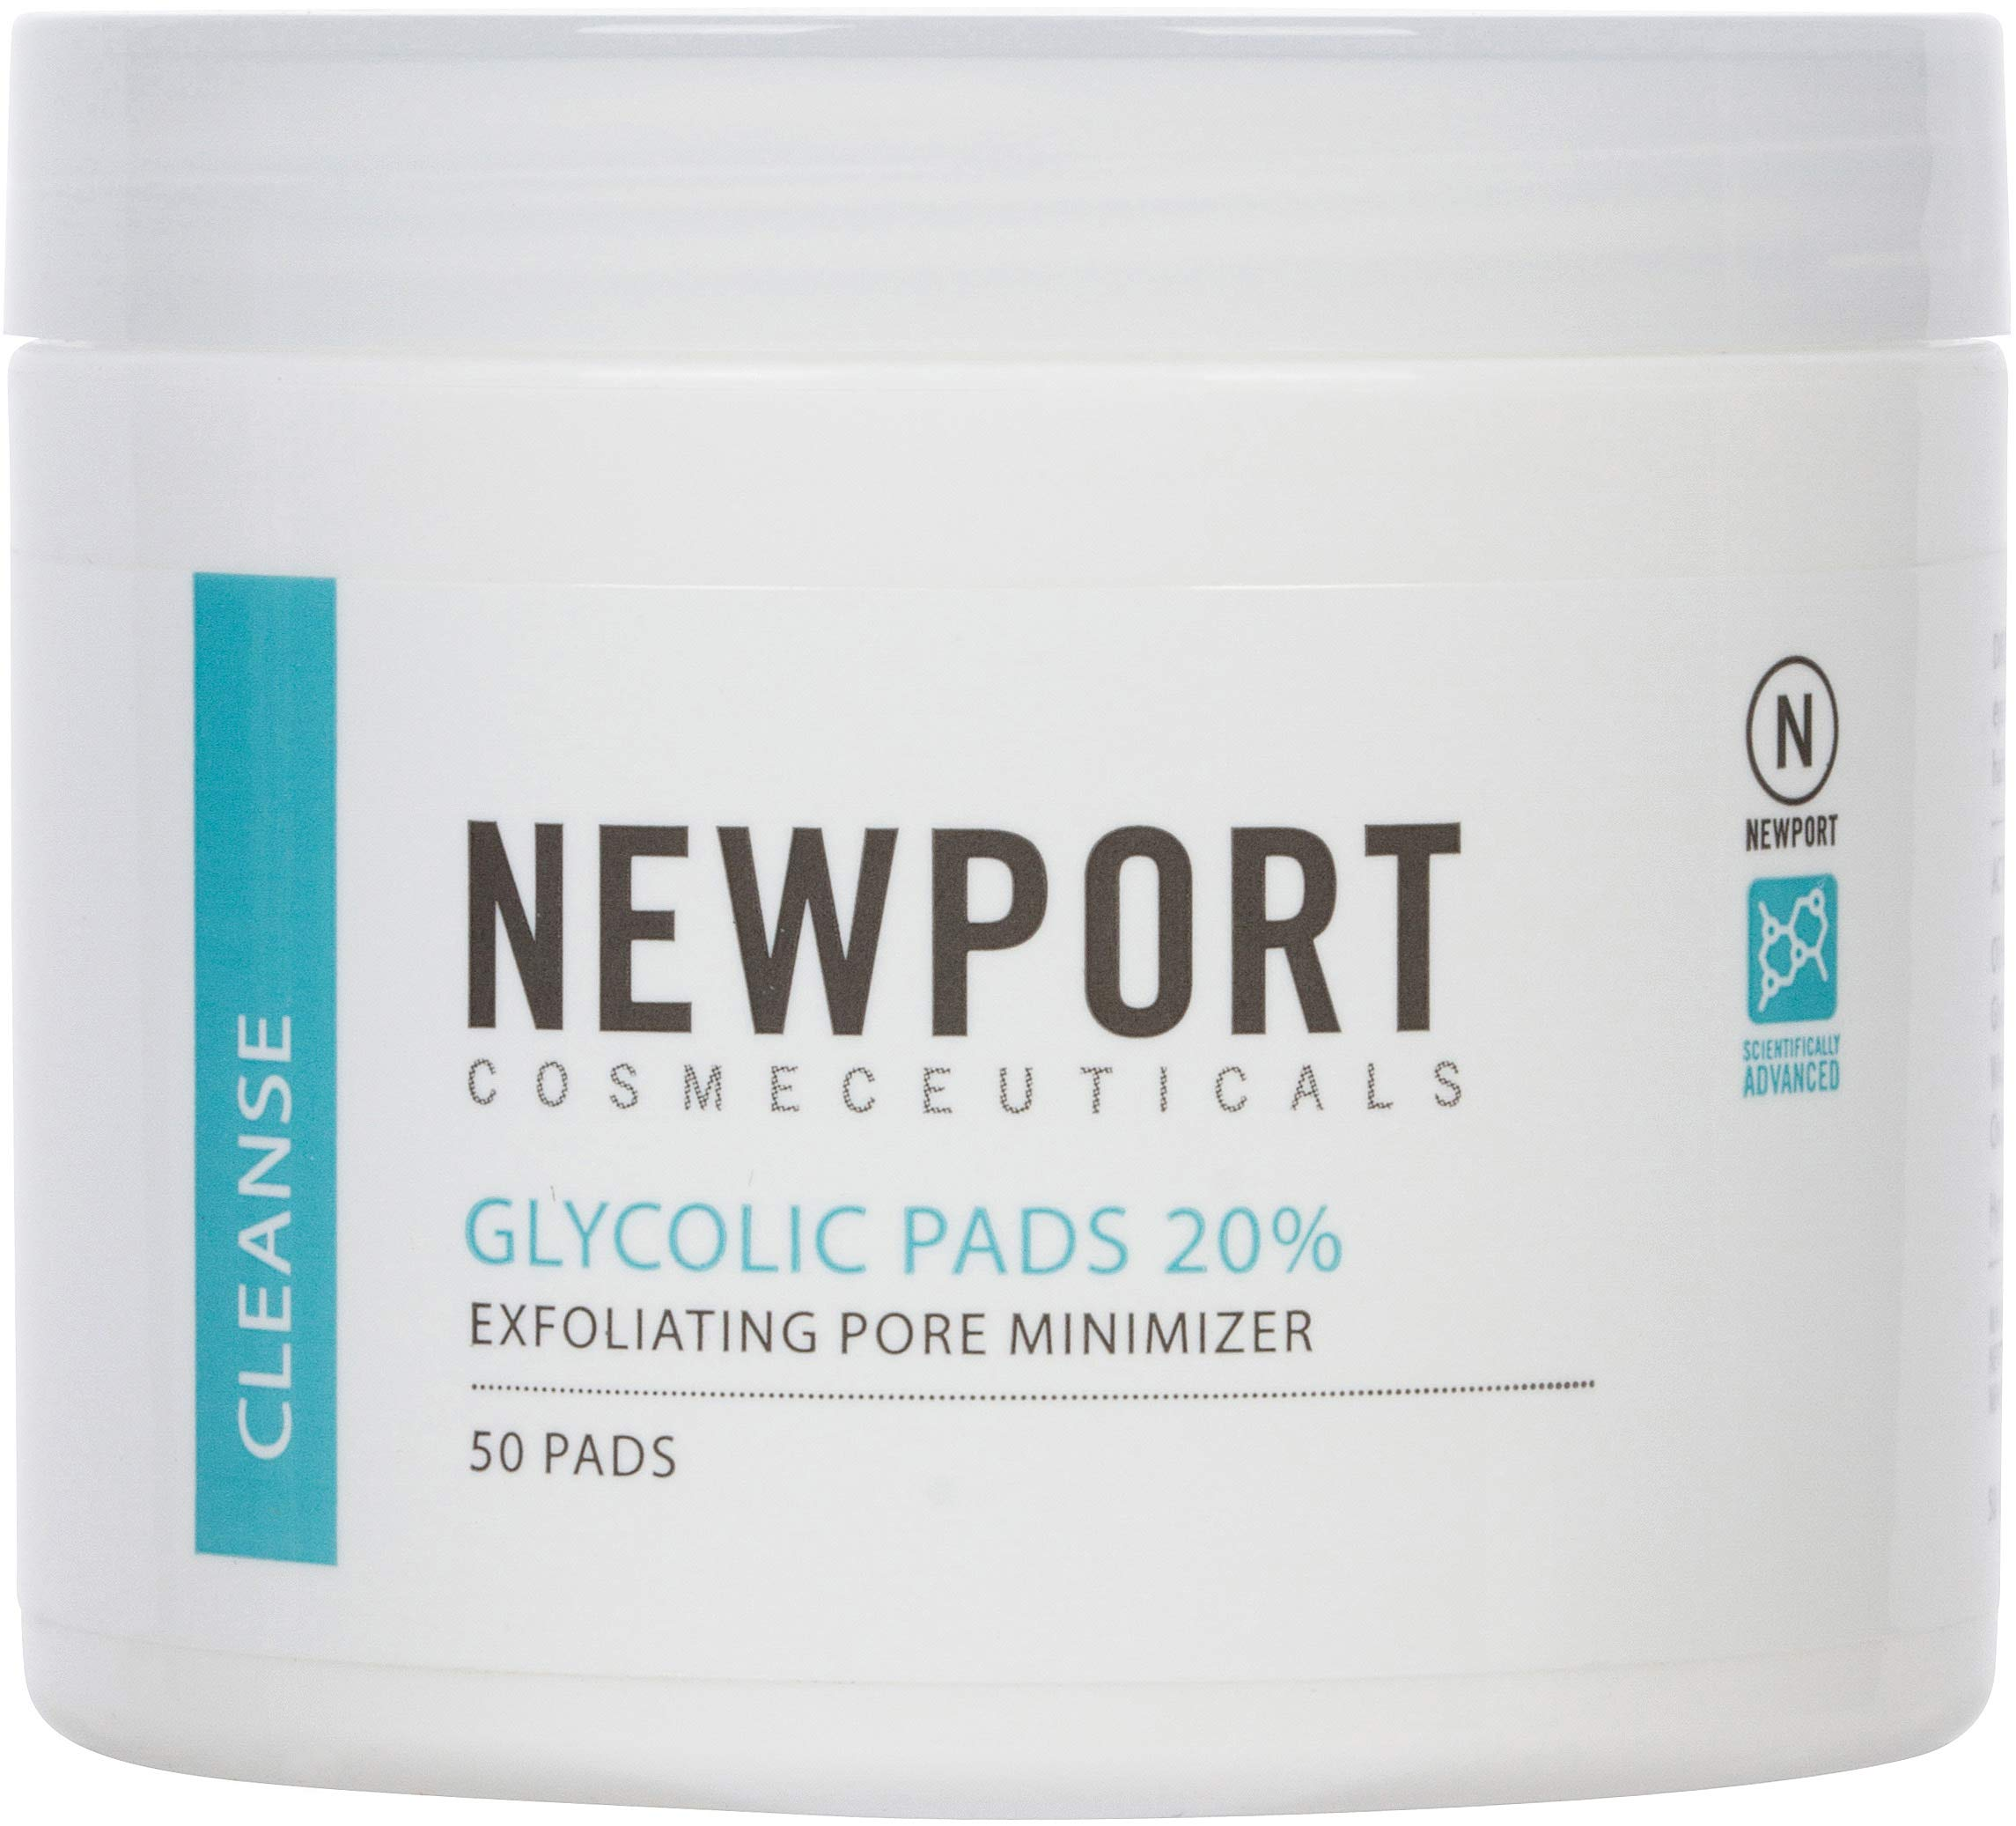 20% Glycolic Acid Pads and Exfoliating Face Cleansing Wipes